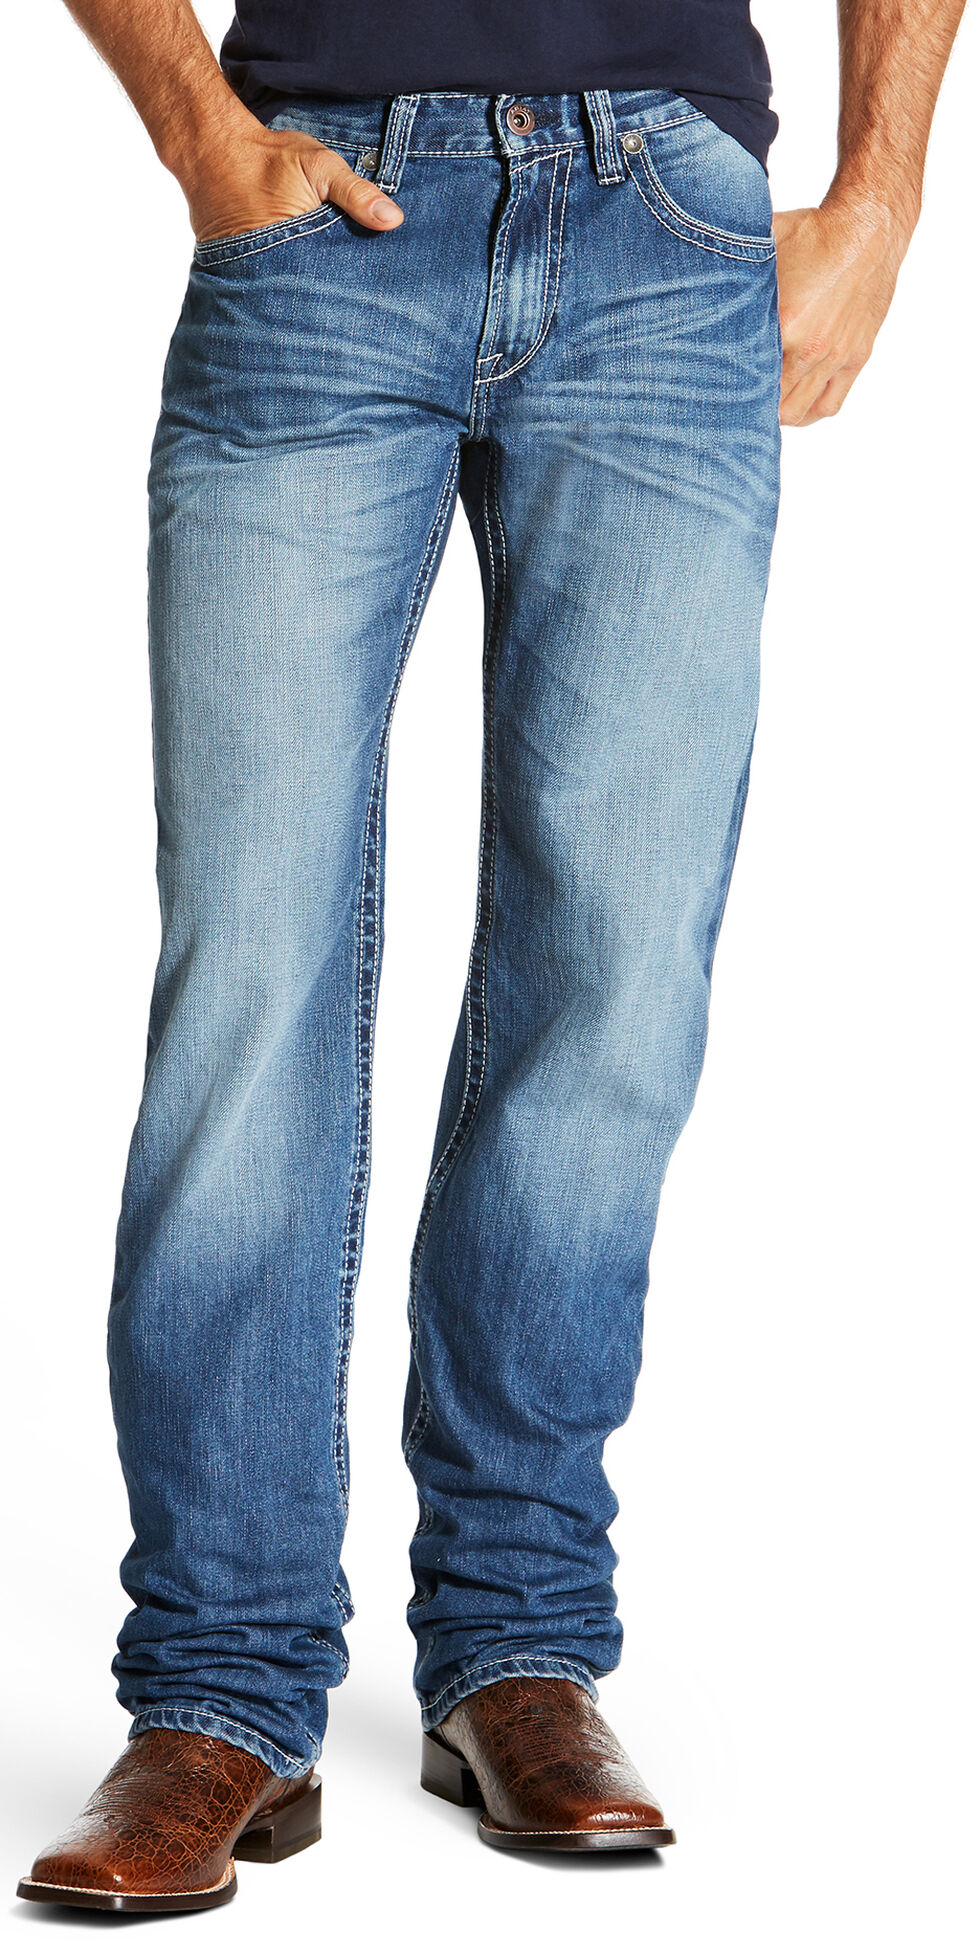 Ariat Men's M2 Cody Relaxed Fit Boot Cut Jeans, Indigo, hi-res